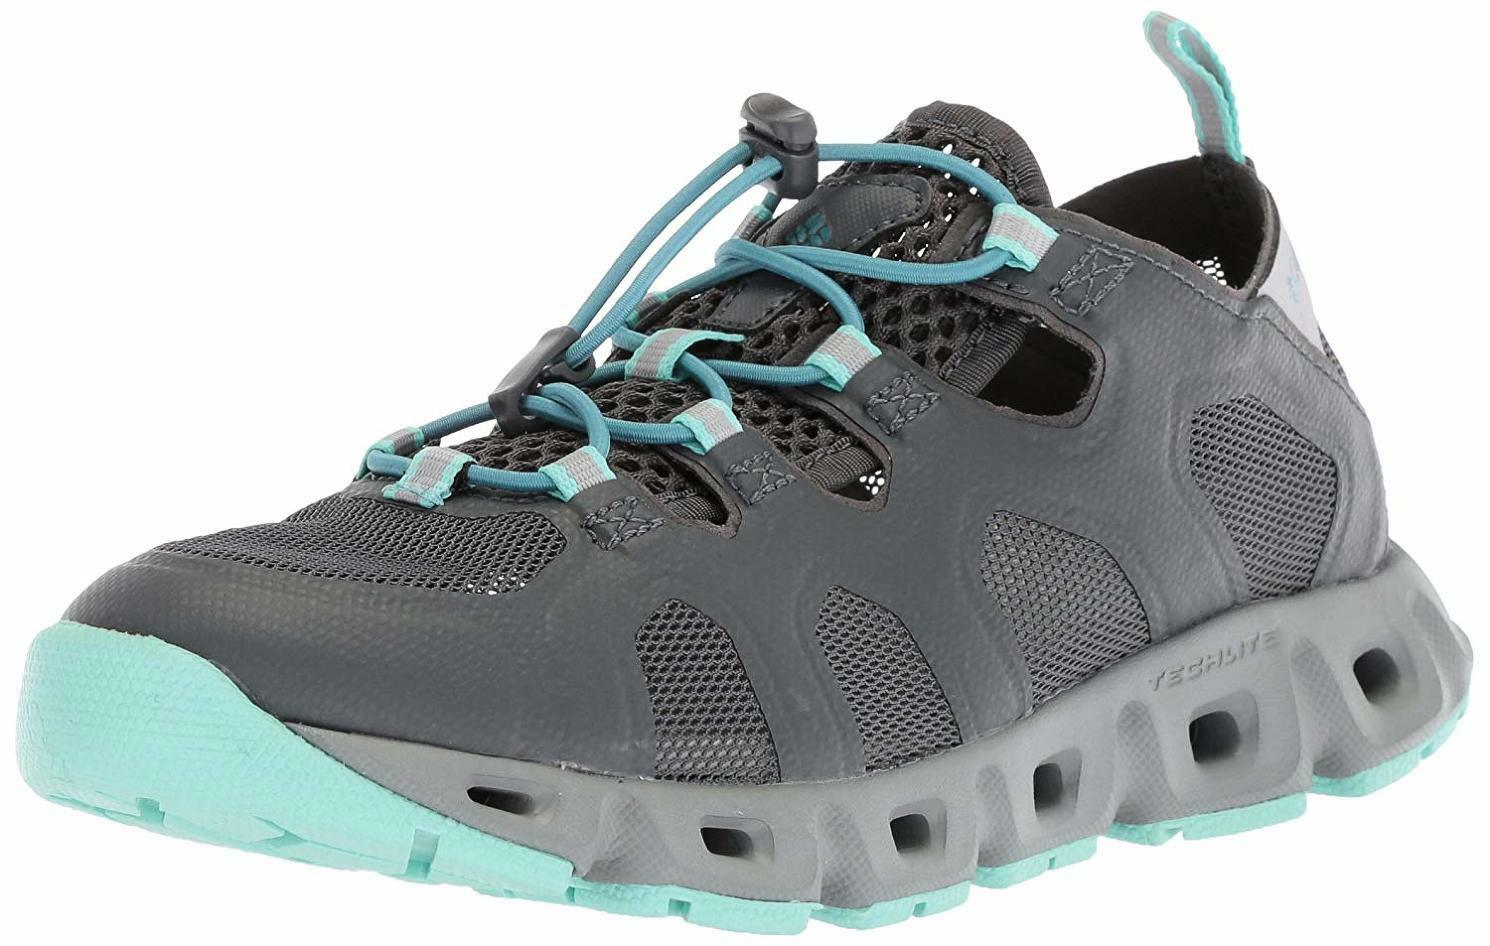 Femme Columbia Supervent Water chaussures-Choisir Taille couleur